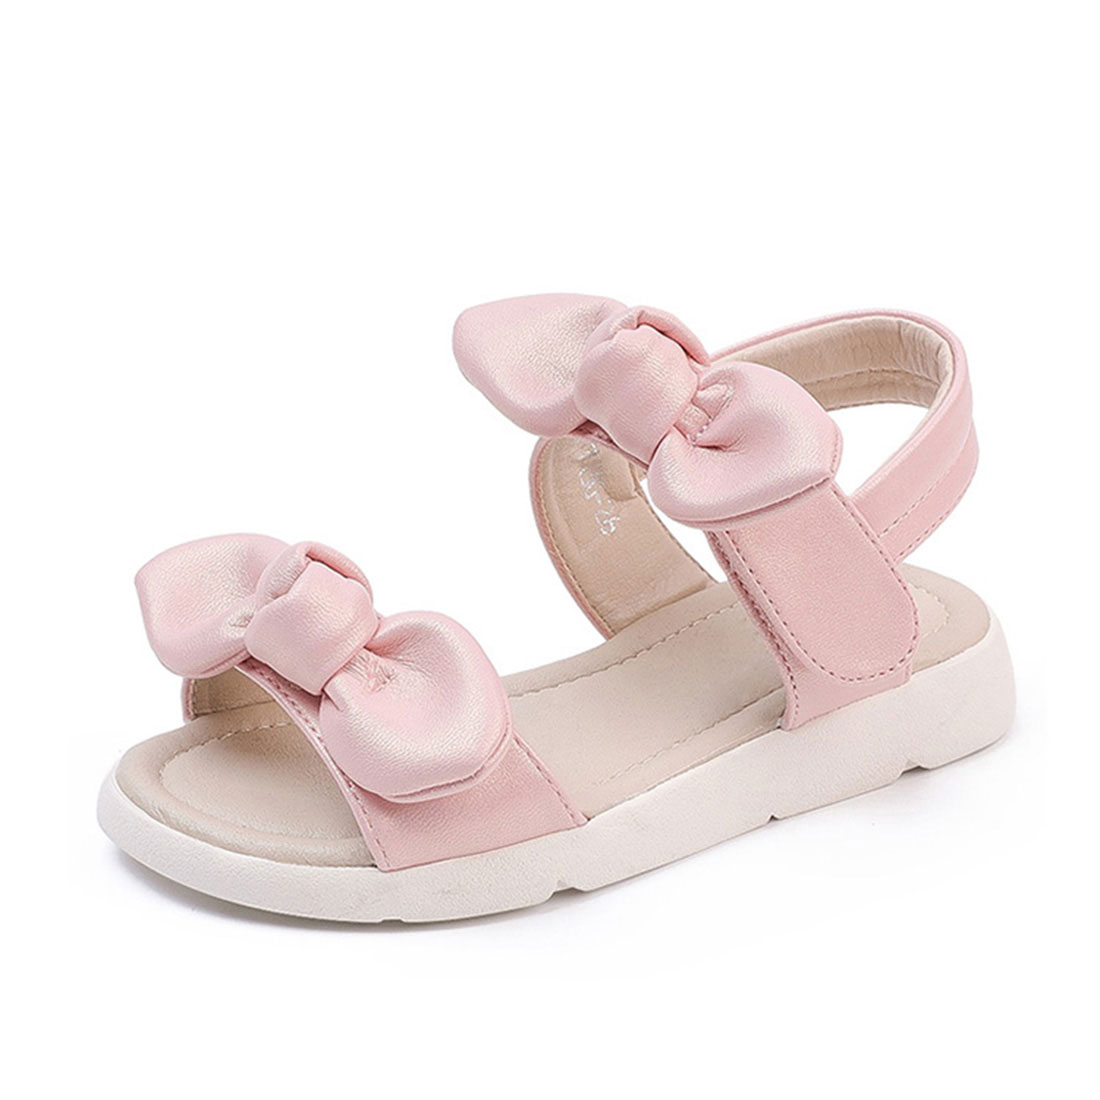 Genuine leather pink flat open toe summer fashion bow girls sandals shoes